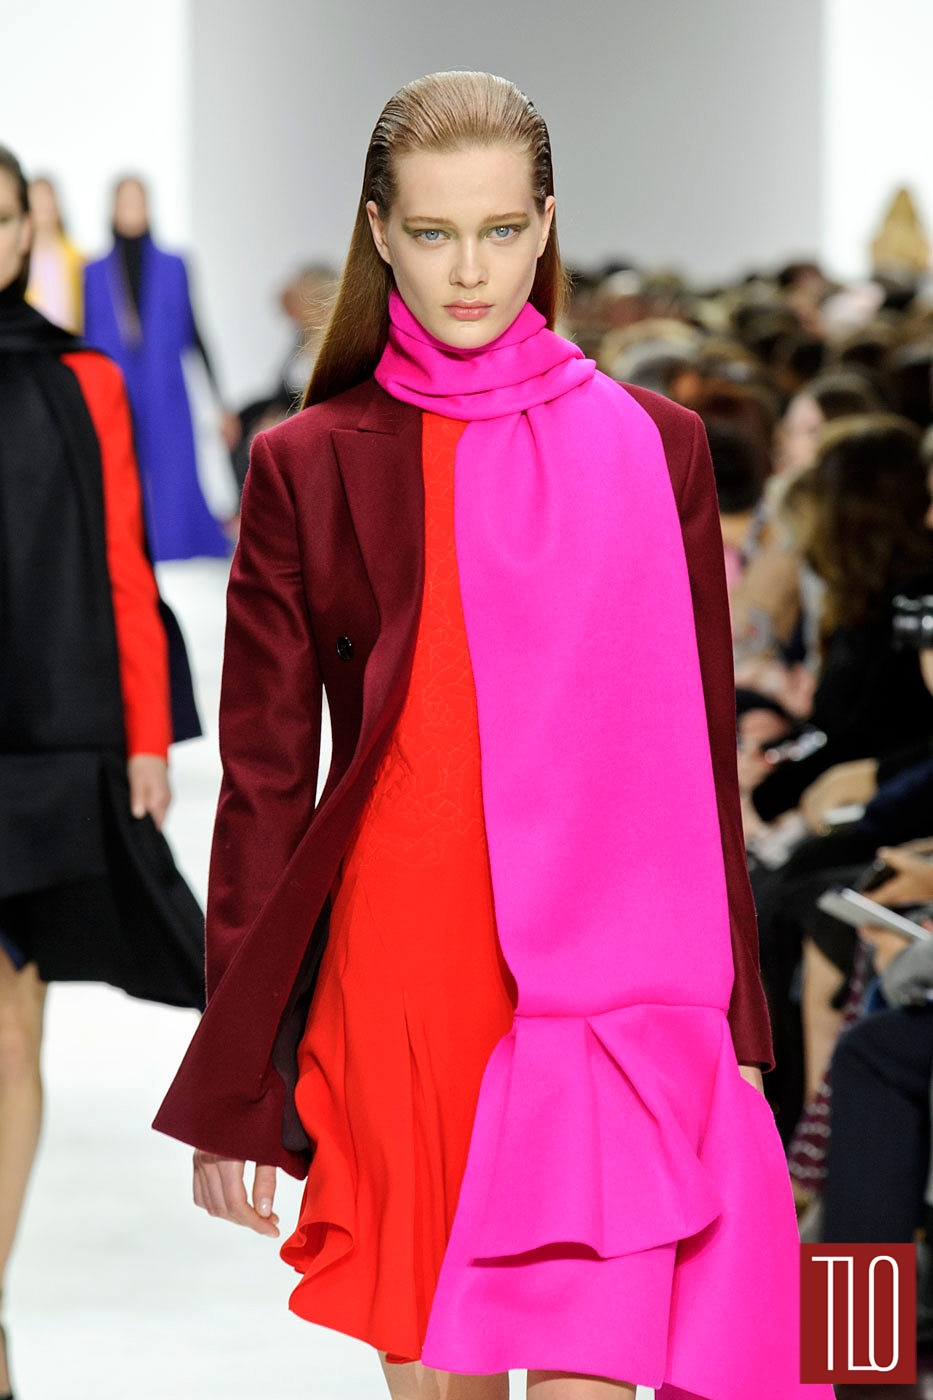 Christian-Dior-Fall-2014-Collection-Tom-Lorenzo-Site-TLO (0)